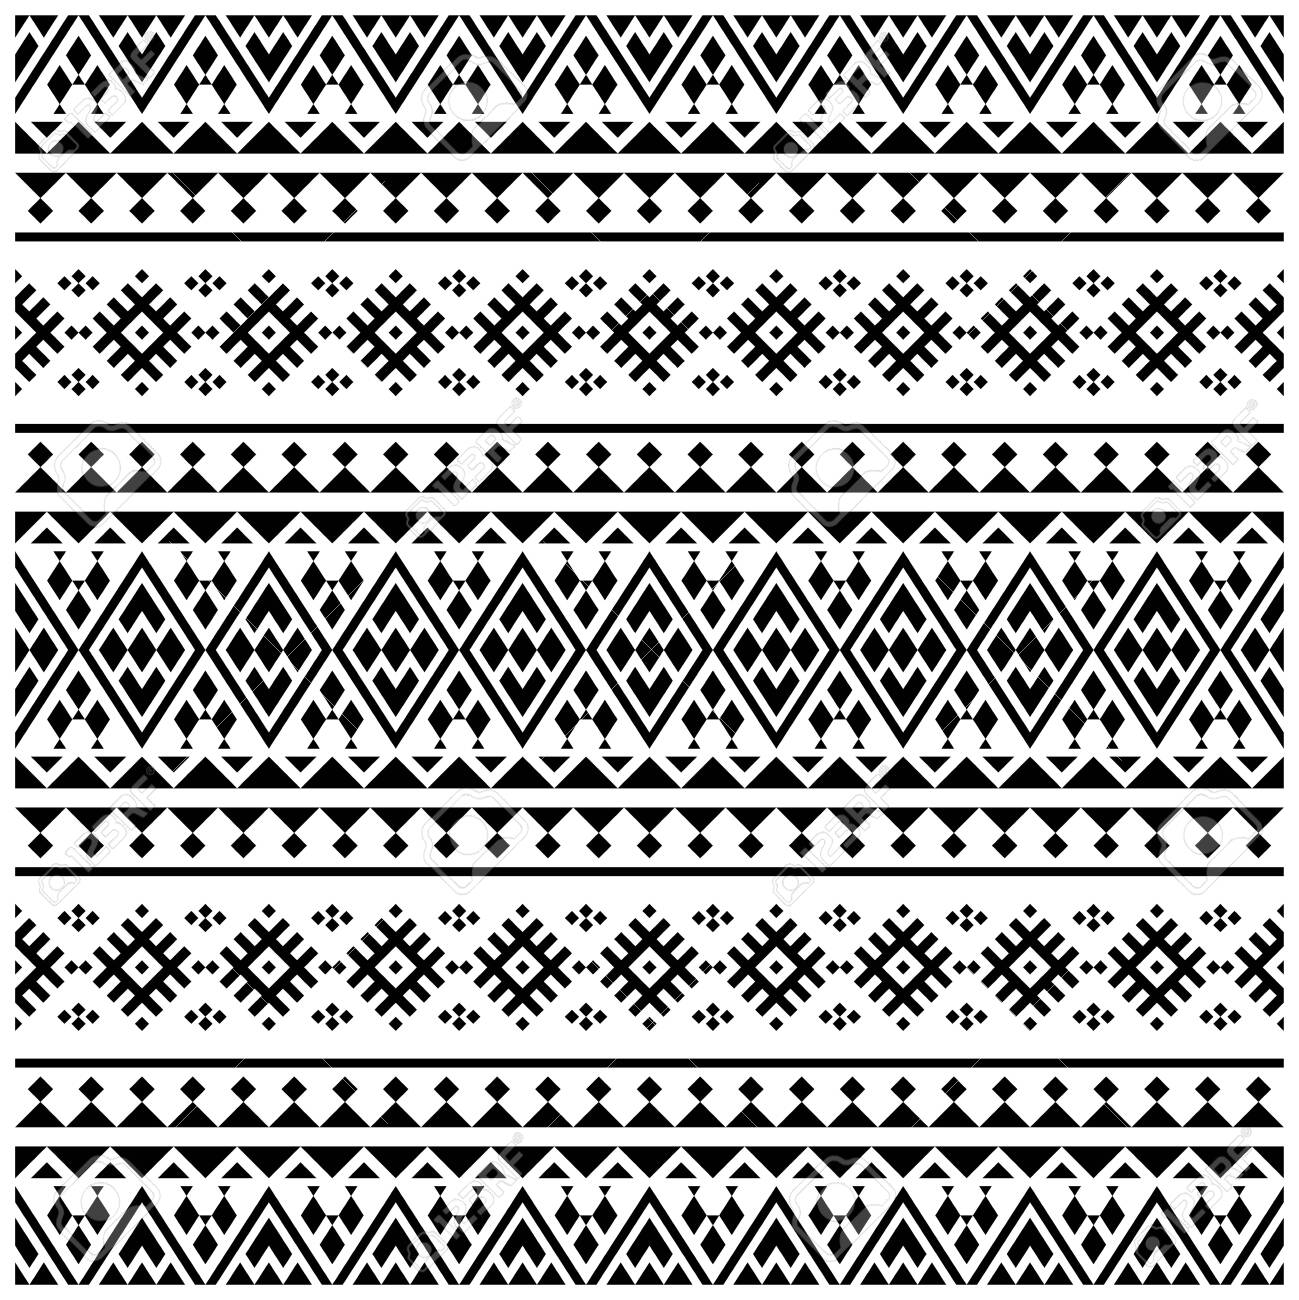 Aztec Ikat ethnic pattern vector in black and white color. Seamless Ethnic Pattern background texture - 150284184